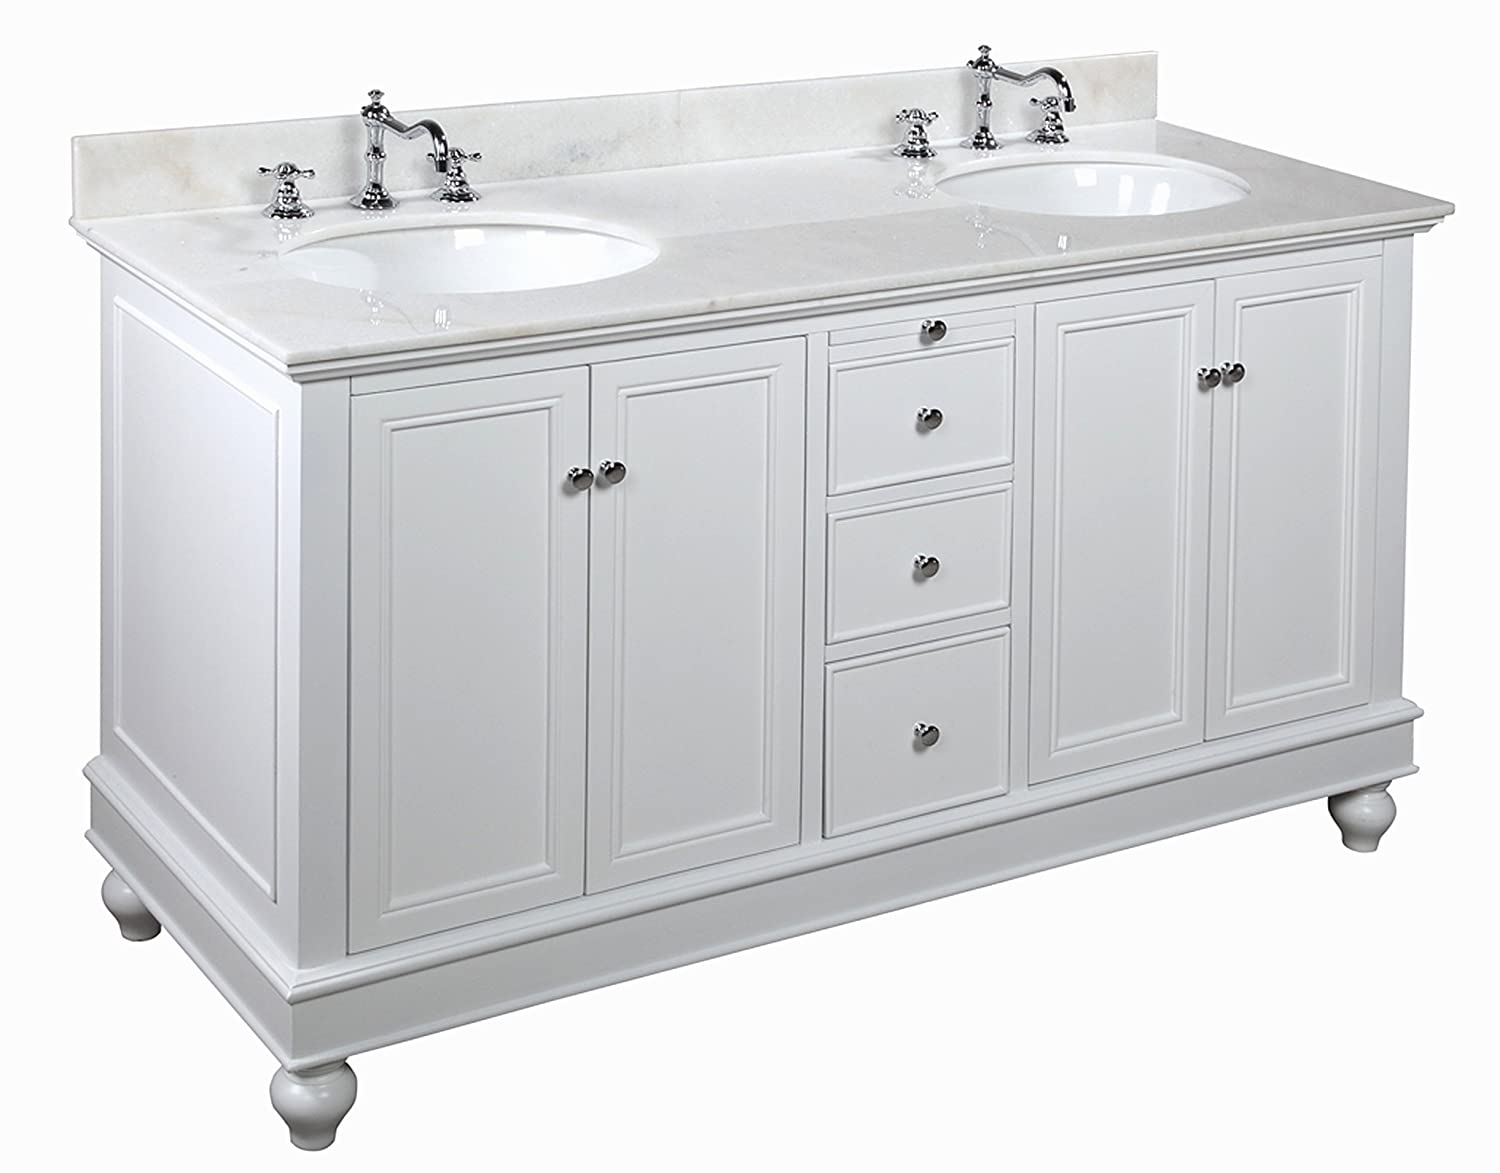 Low cost kitchen bath collection kbc222wtwt bella double sink bathroom vanity with marble for Double sink countertop bathroom